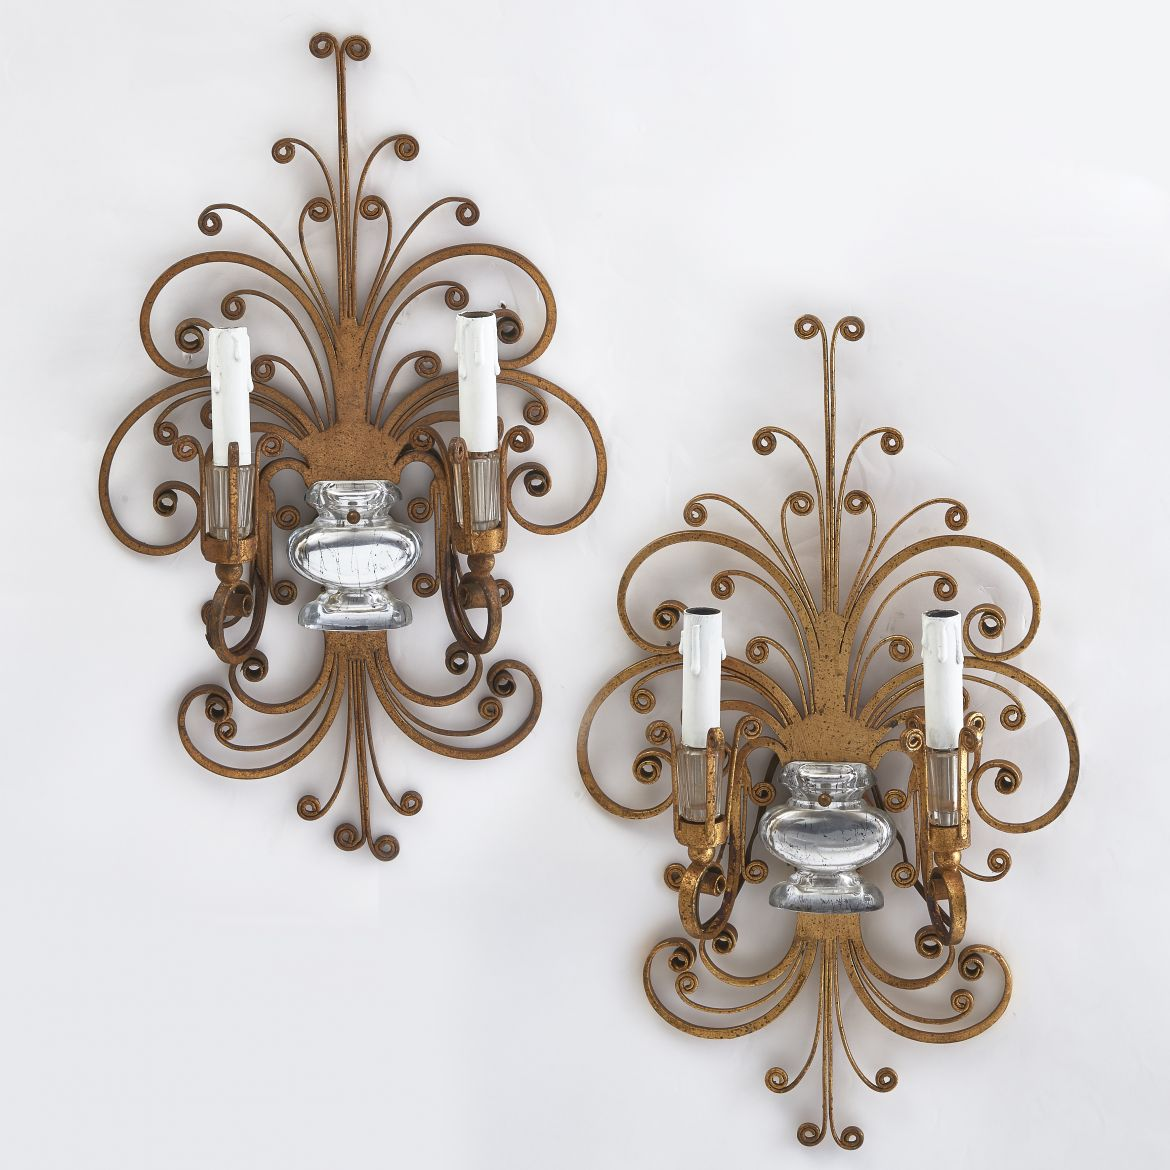 Italian Banci Wall Sconces